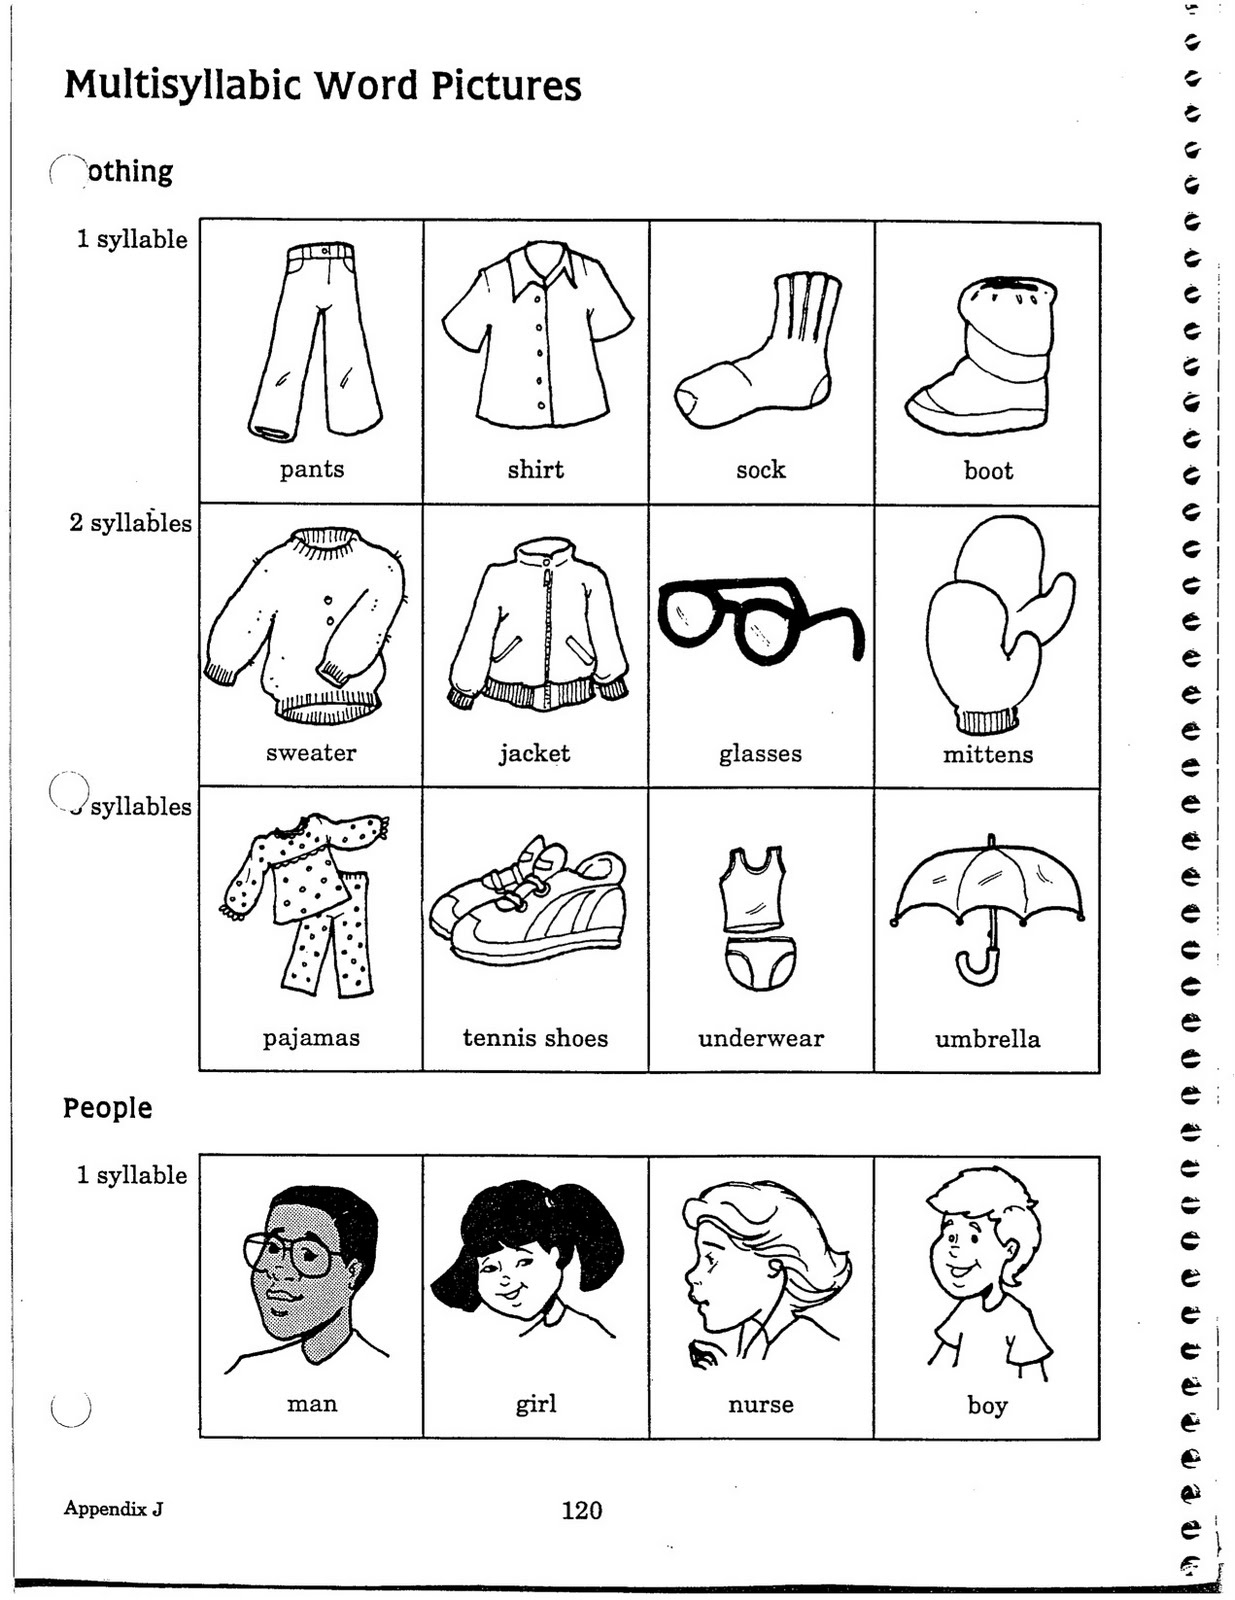 A+SPEECH THERAPY (SmartPalate Therapy): FREE-HOMEWORK ...